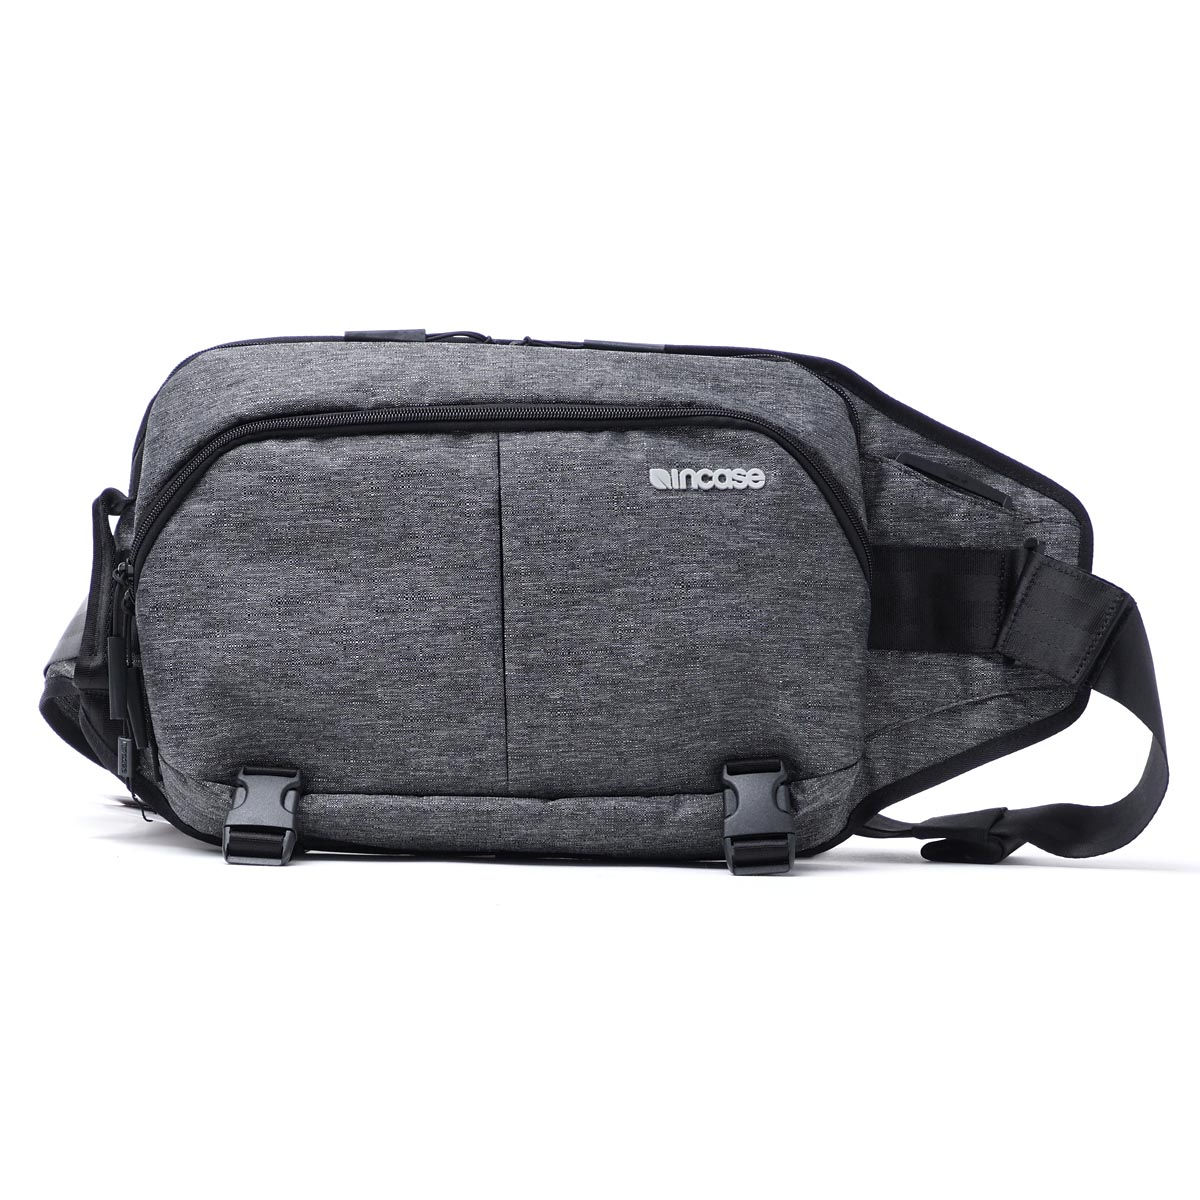 界内情况INCASE身体包一肩膀Reform Sling Pack HEATHERGREY灰色派cl55576 heather black人